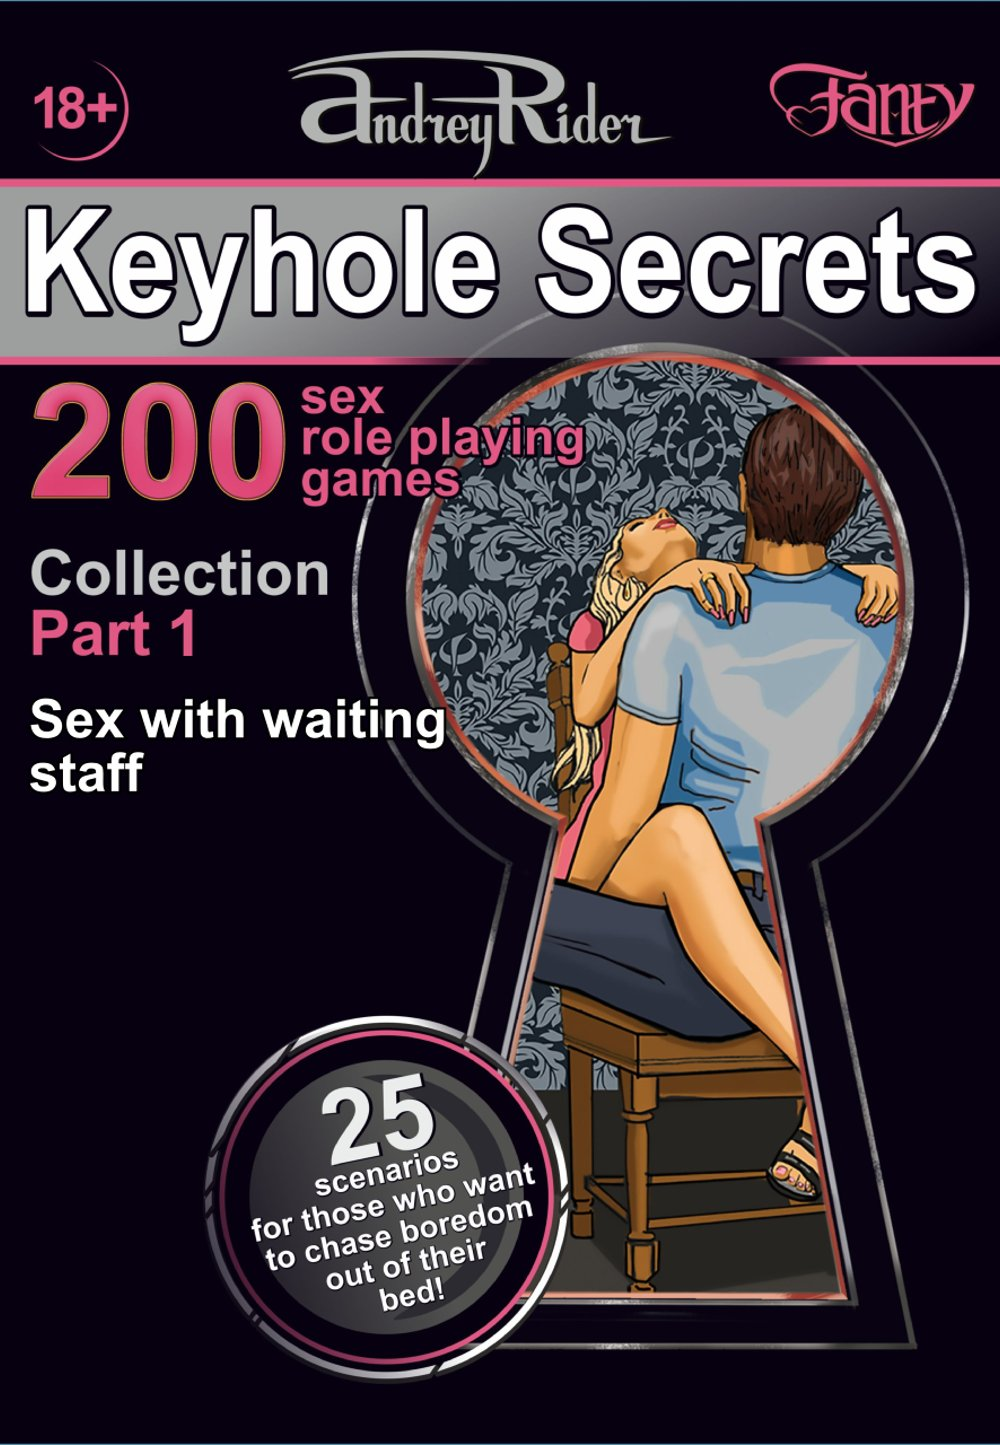 Collection of 200 Sex Role Playing Games. Part 1 (scenarios 1-25)